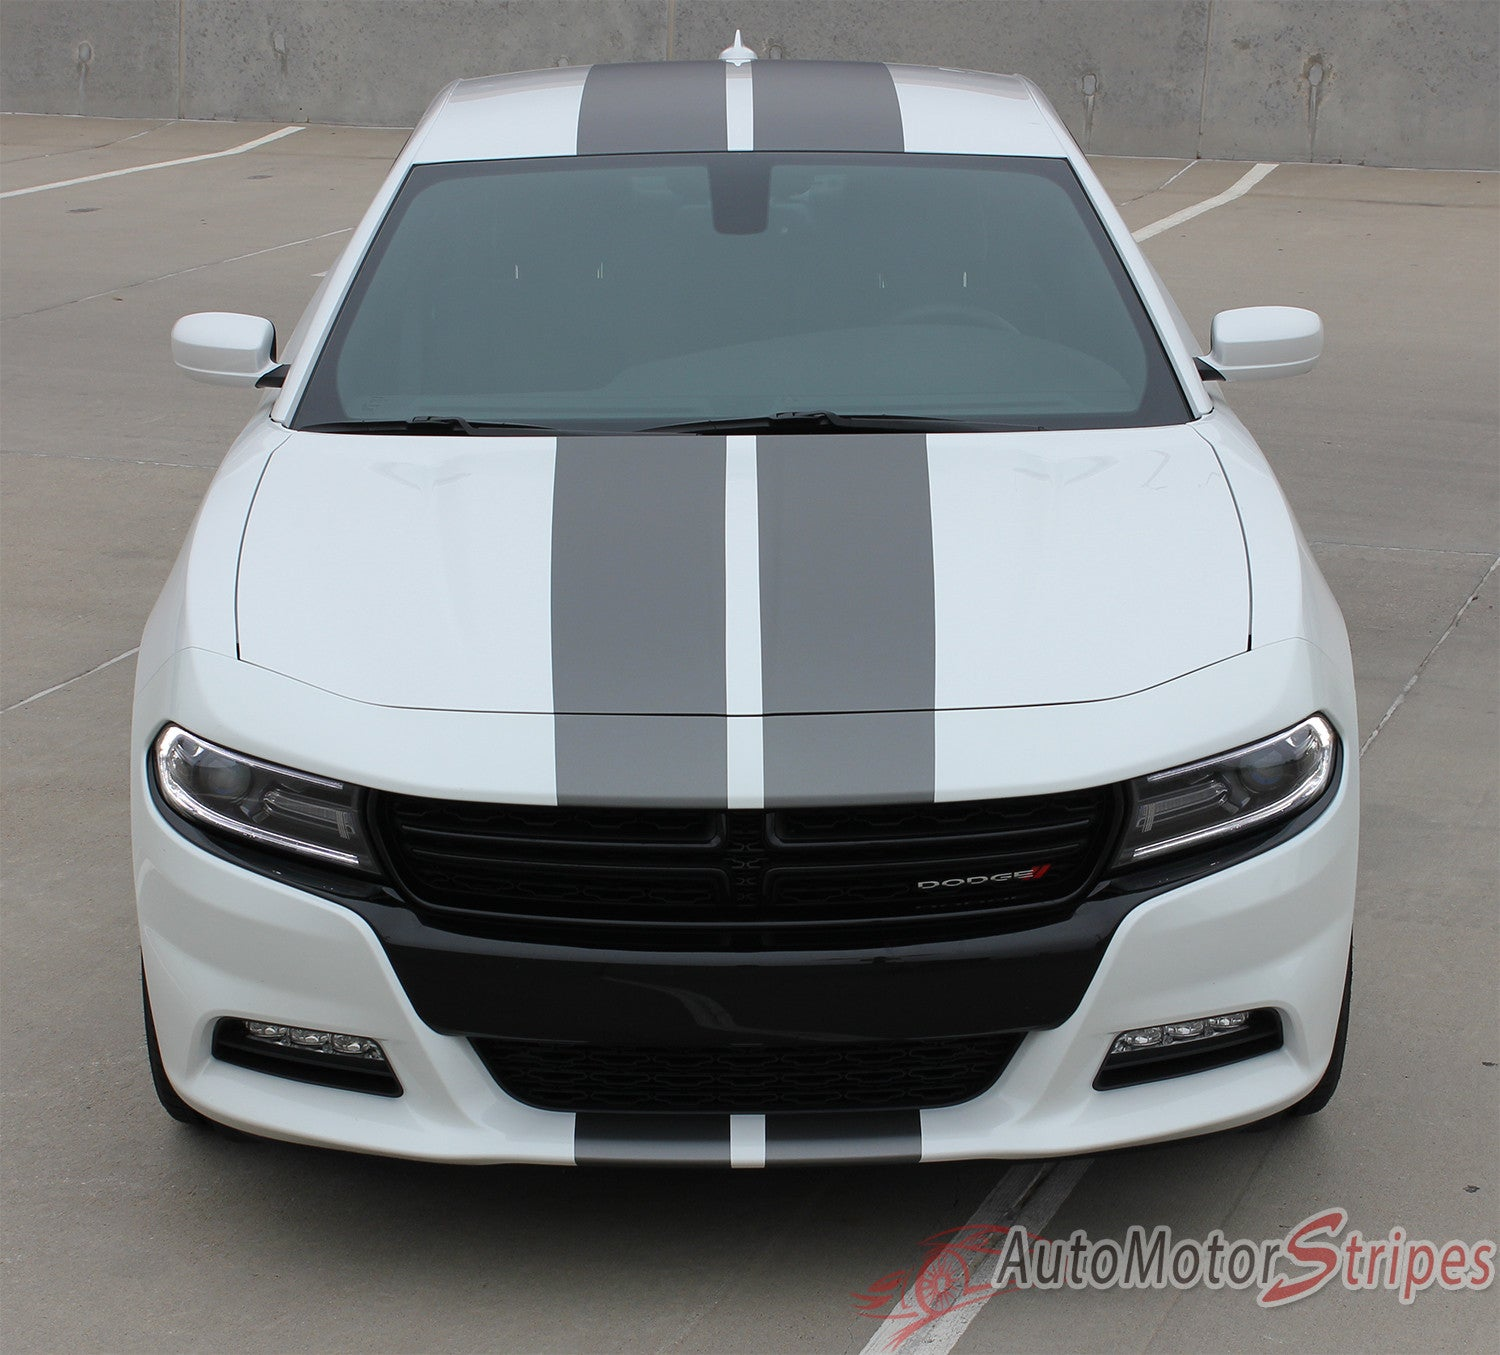 Widebody Dodge Challenger 311134164 likewise Help For Dell Inspiron 531 Pic together with 2015 2017 Dodge Charger N Charge Rally S Pack R T Scat Pack Srt 392 Hellcat Factory Quality Mopar Style Vinyl Racing Stripes 3m Graphic Kit likewise Dodge challenger wheels rims together with Products new. on 2015 dodge srt 392 graphics